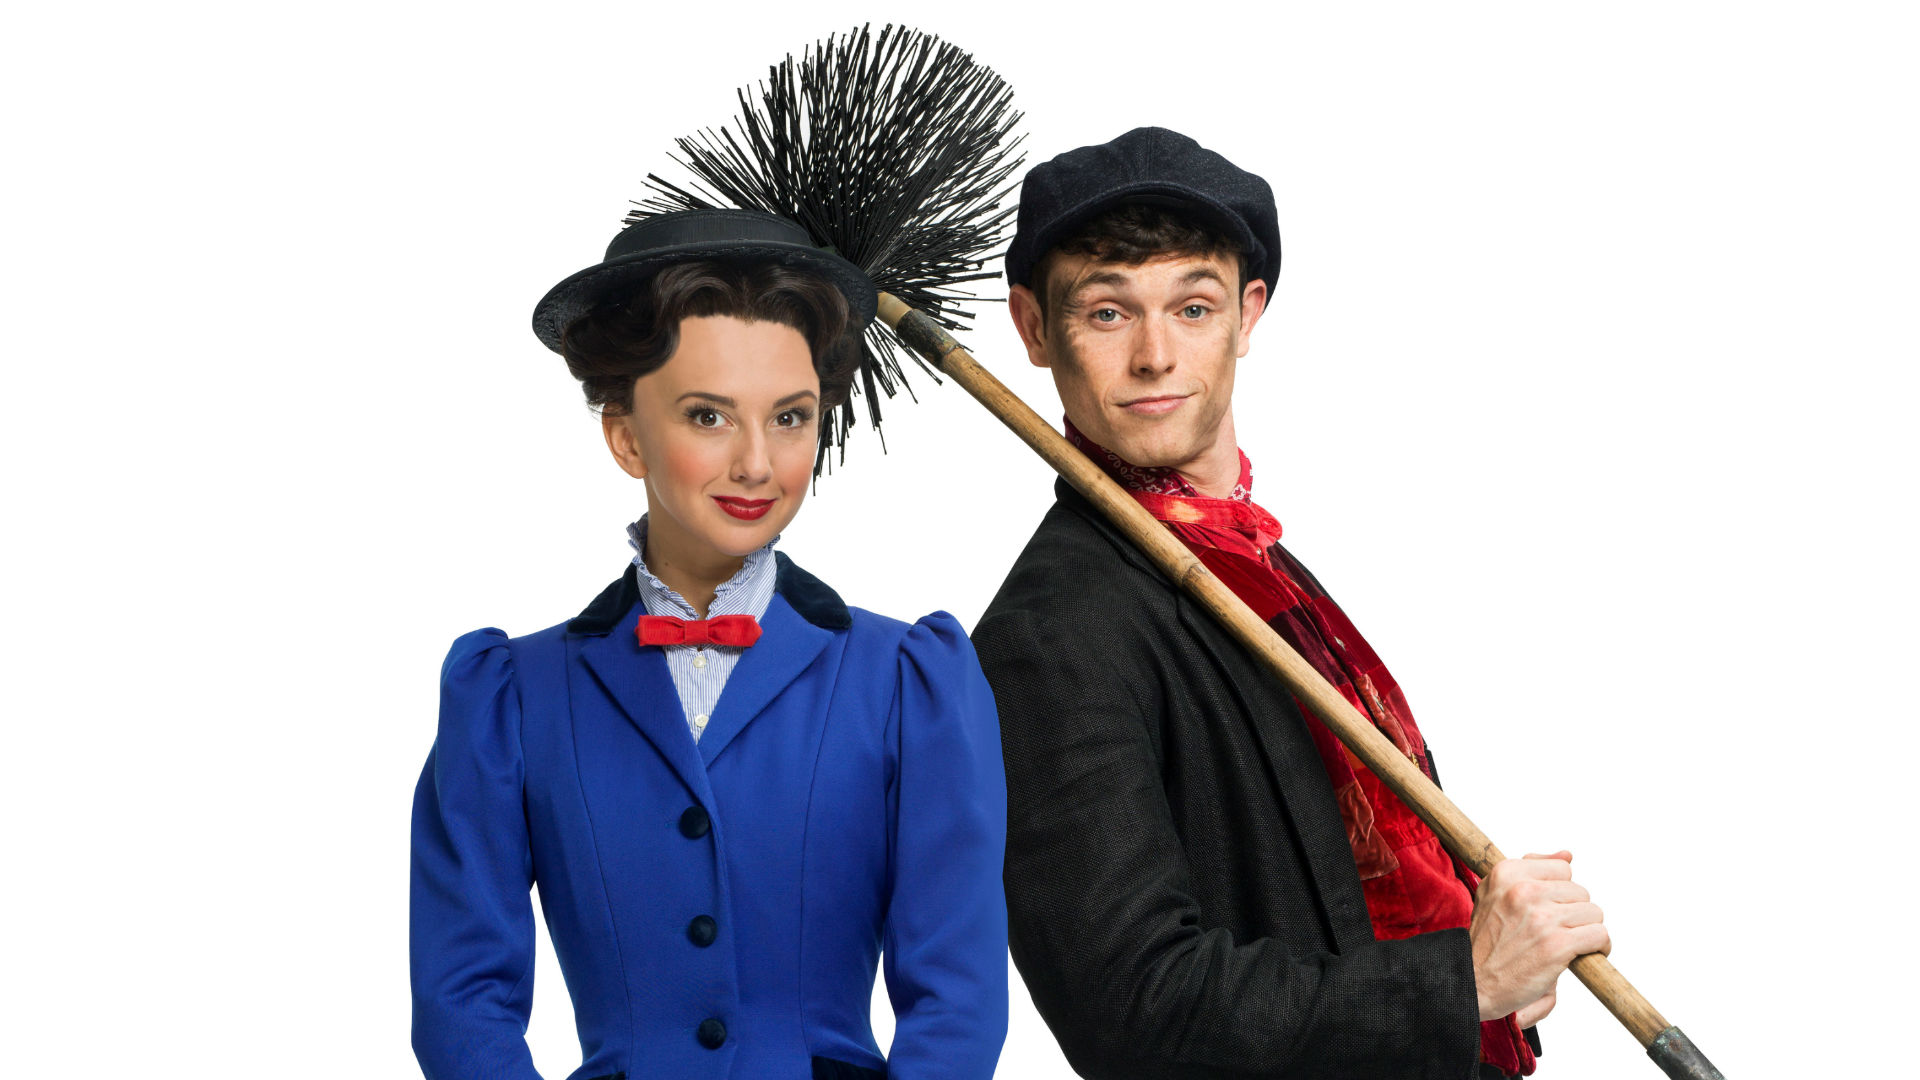 Mary Poppins and Bert the Chimney Sweep stand side-by-side. Bert carries his brush for sweeping chimneys over his shoulder. Mary wears her nanny's uniform of black hat and bright blue jacket.